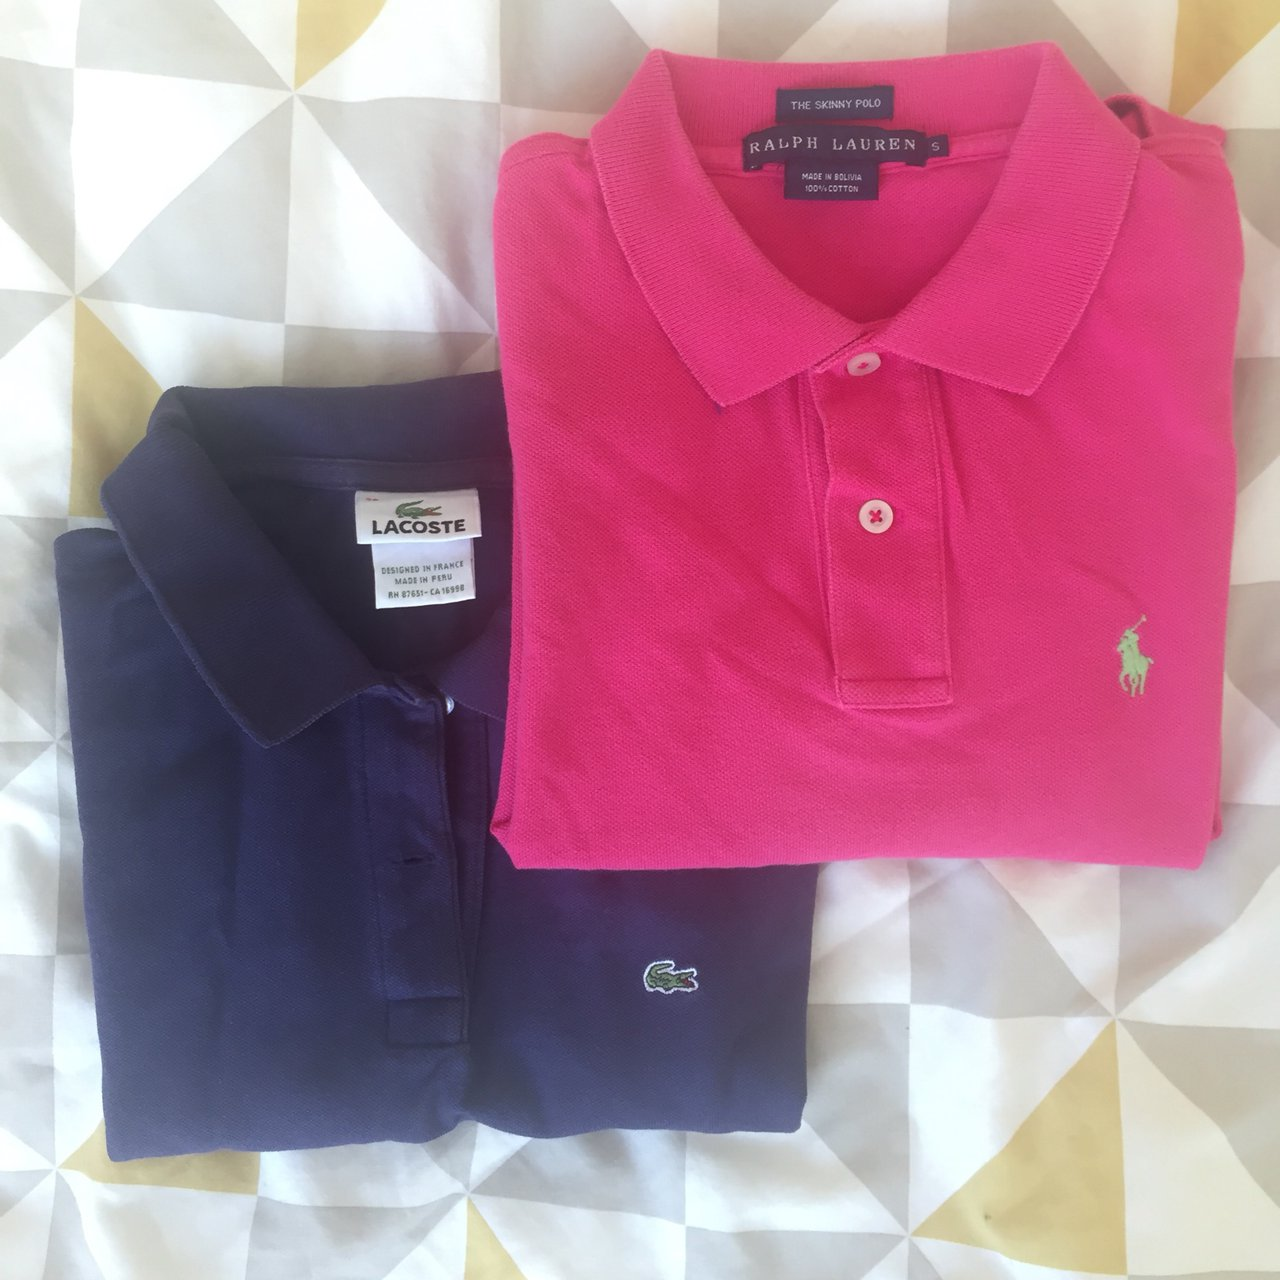 061b95a46 ... sweden lacoste and ralph lauren womens polo shirts size xs s or depop  8fd8d 92efe